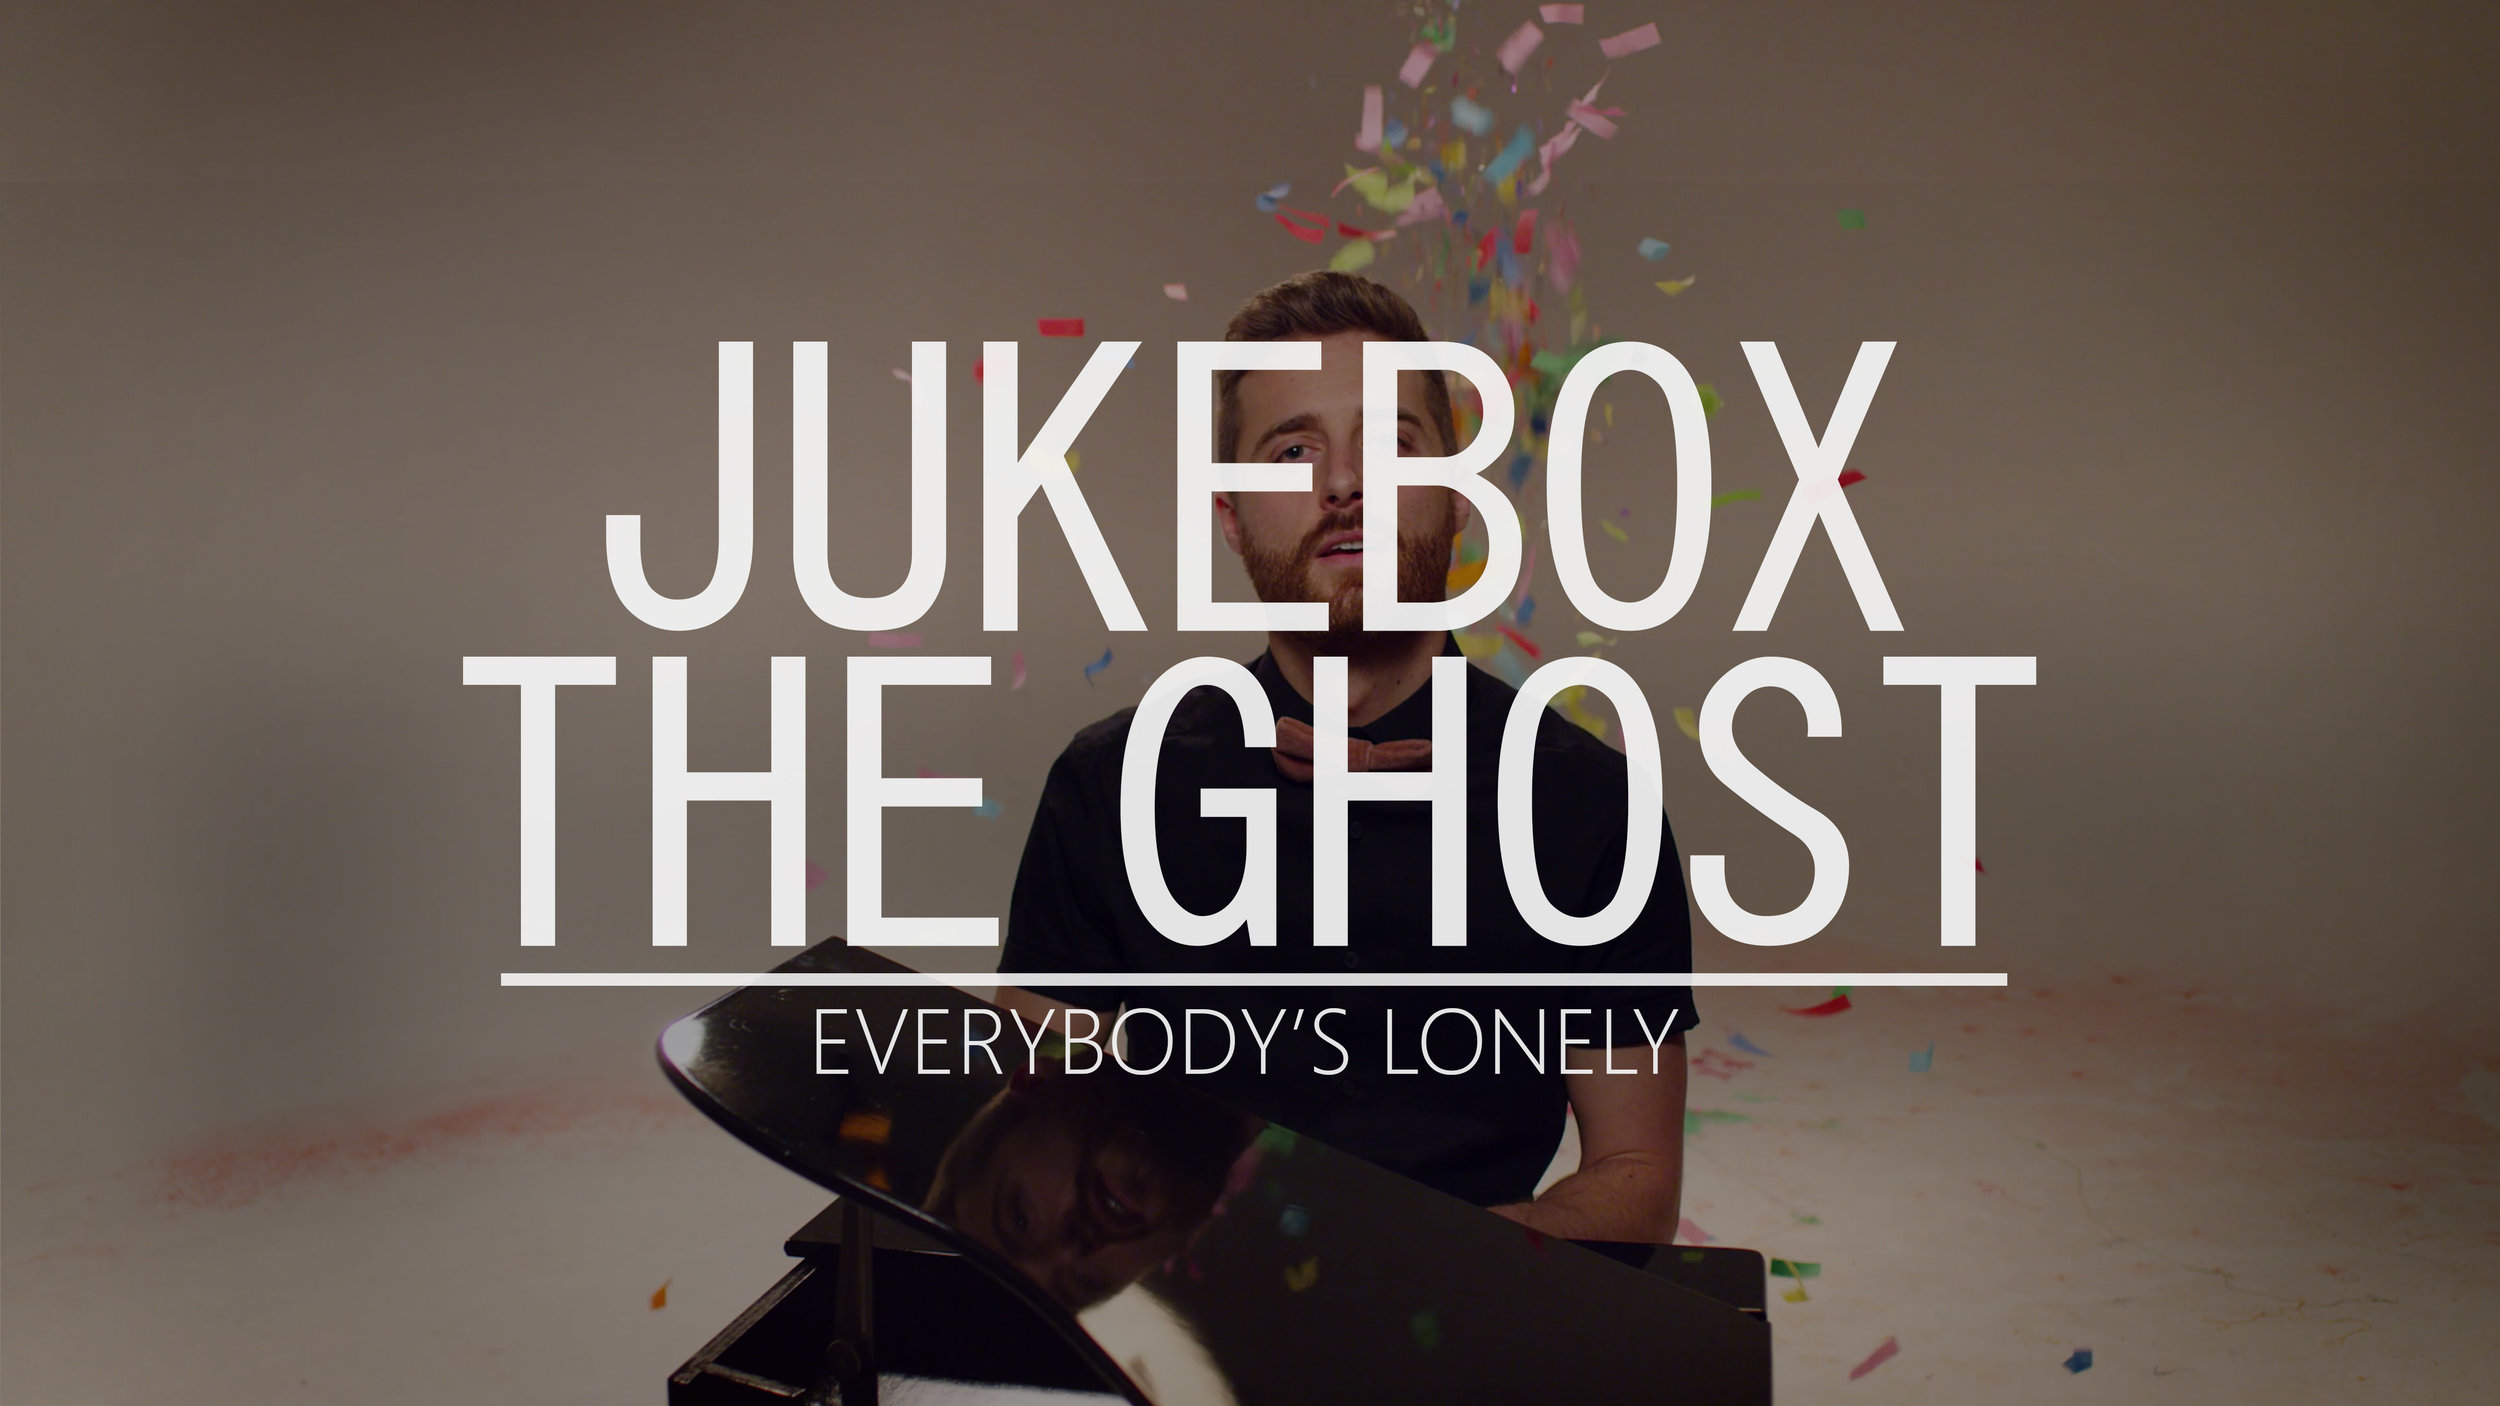 """Jukebox The Ghost - """"Everybody's Lonely"""" - Music Video"""